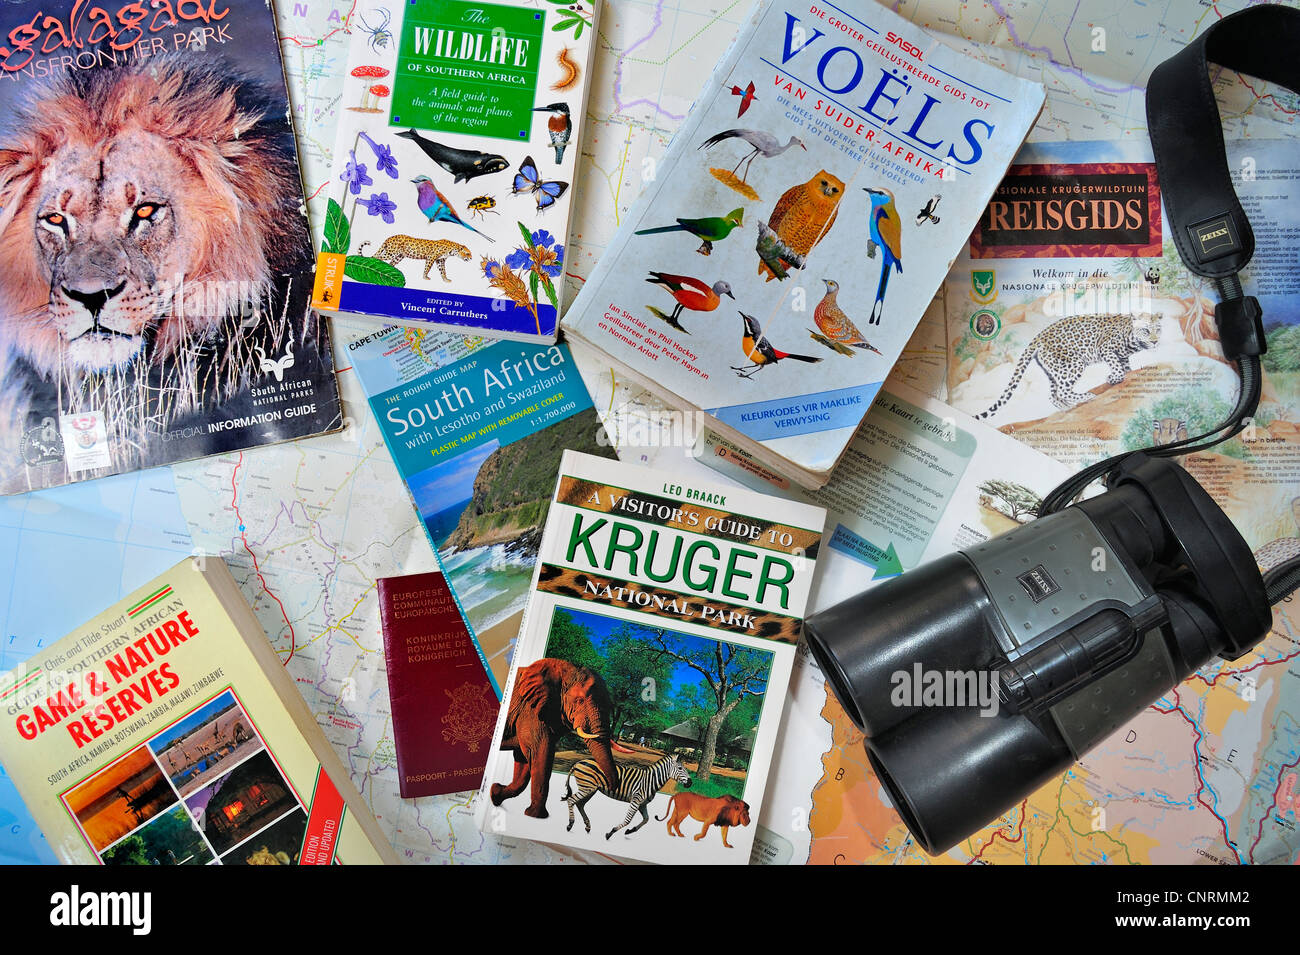 Binoculars, travel guides, guidebooks, African wildlife determination books and South African map for planning safari - Stock Image